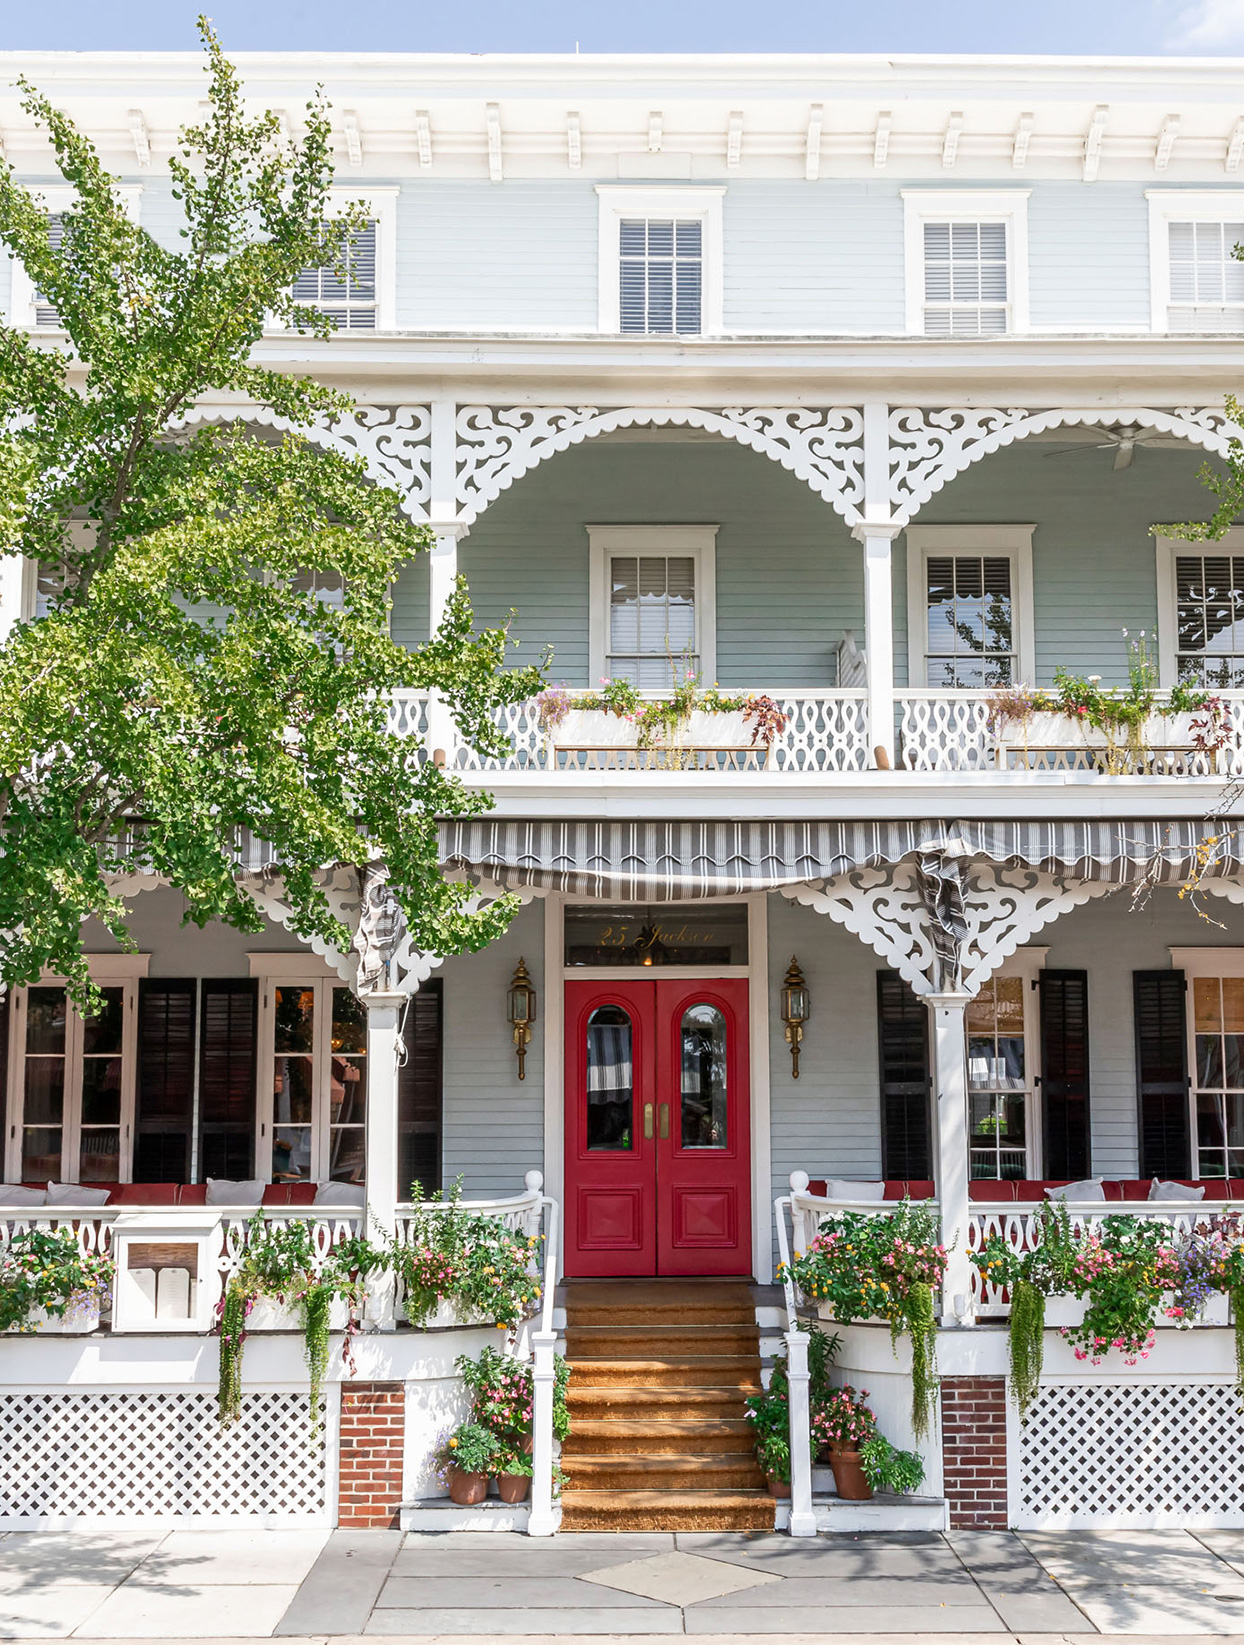 The Virginia Hotel porch front